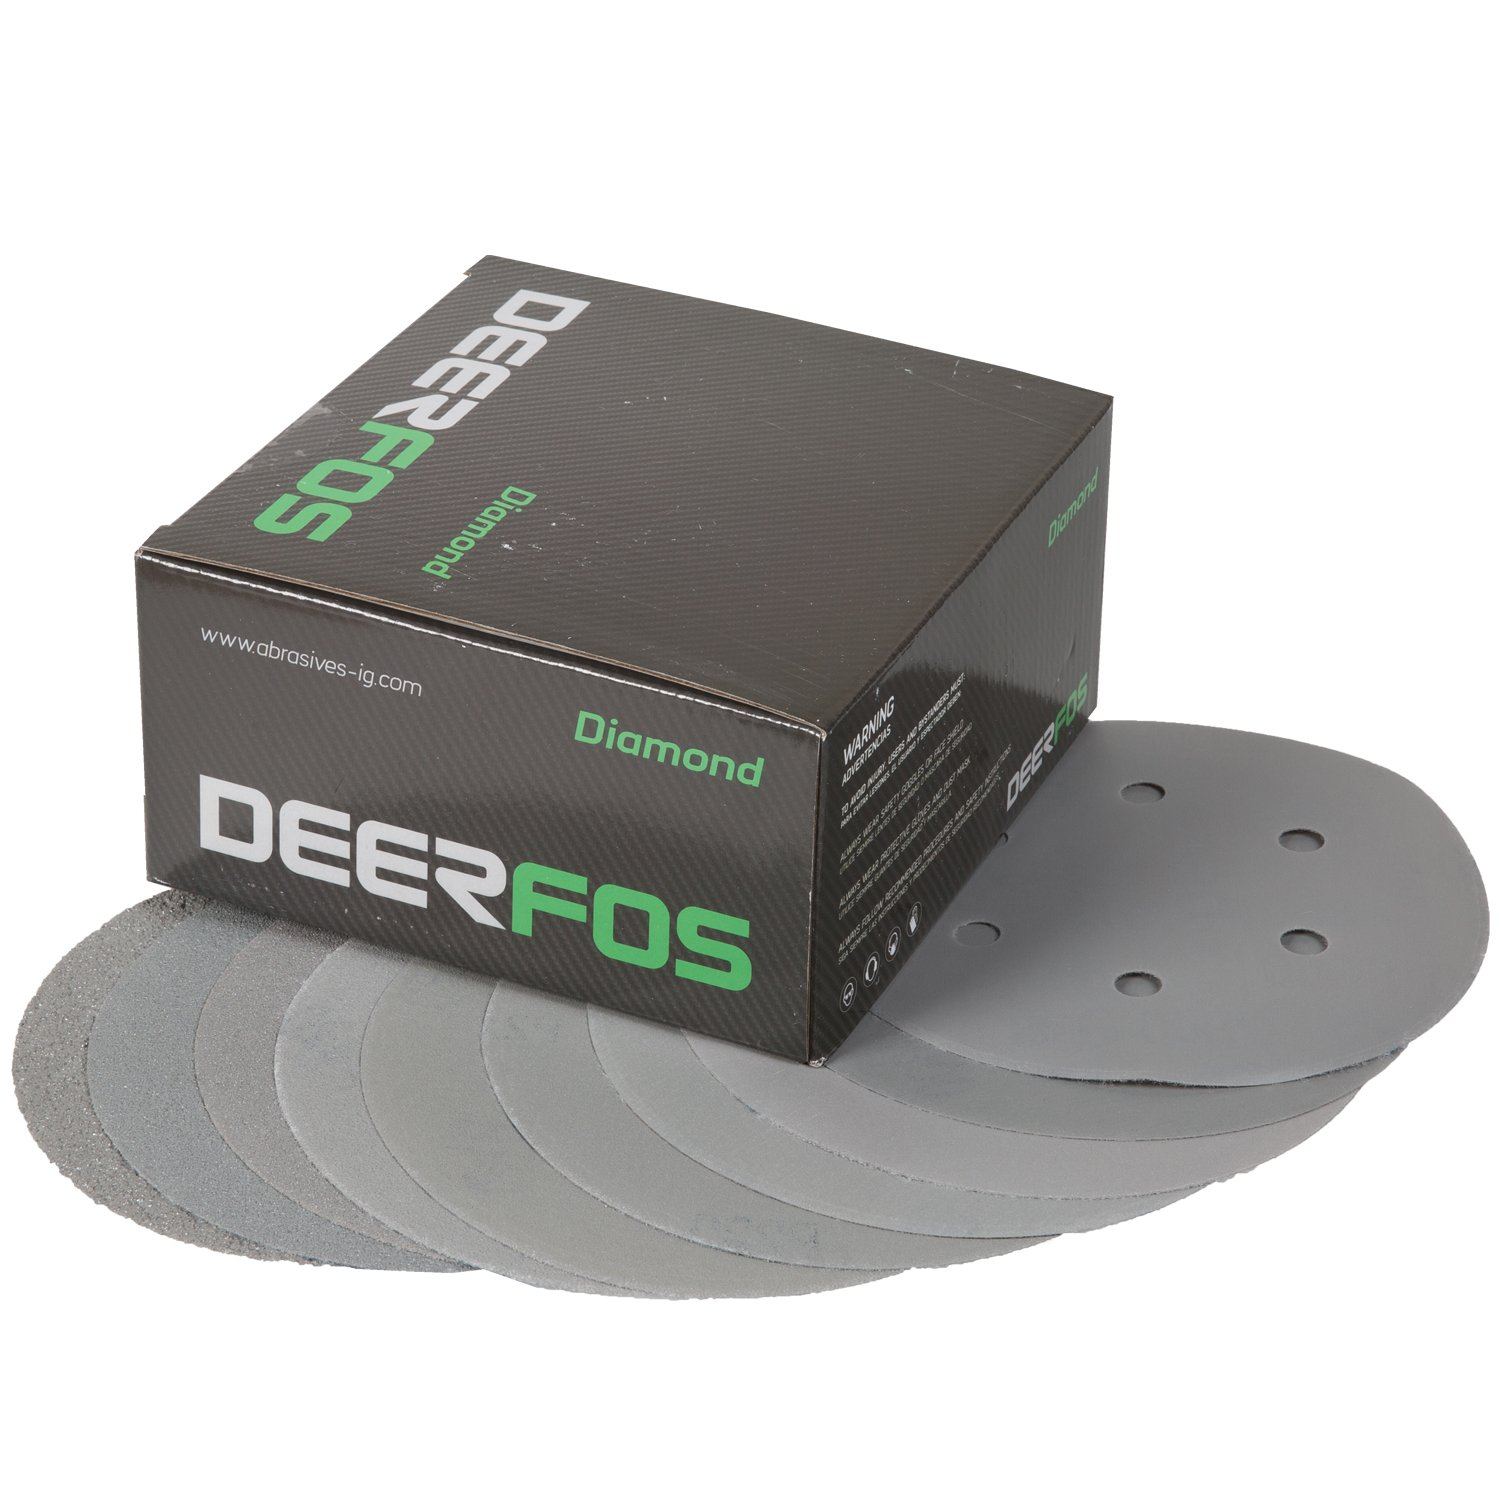 Deerfos Hook and Loop Sanding Discs 6 Inch, 100 Pack, 6 Holes, Assortment Grits including P40, P80, P100, P120, P180, P220, P320, P400, P600 and P800. Made of Aluminum Oxide and Back Film